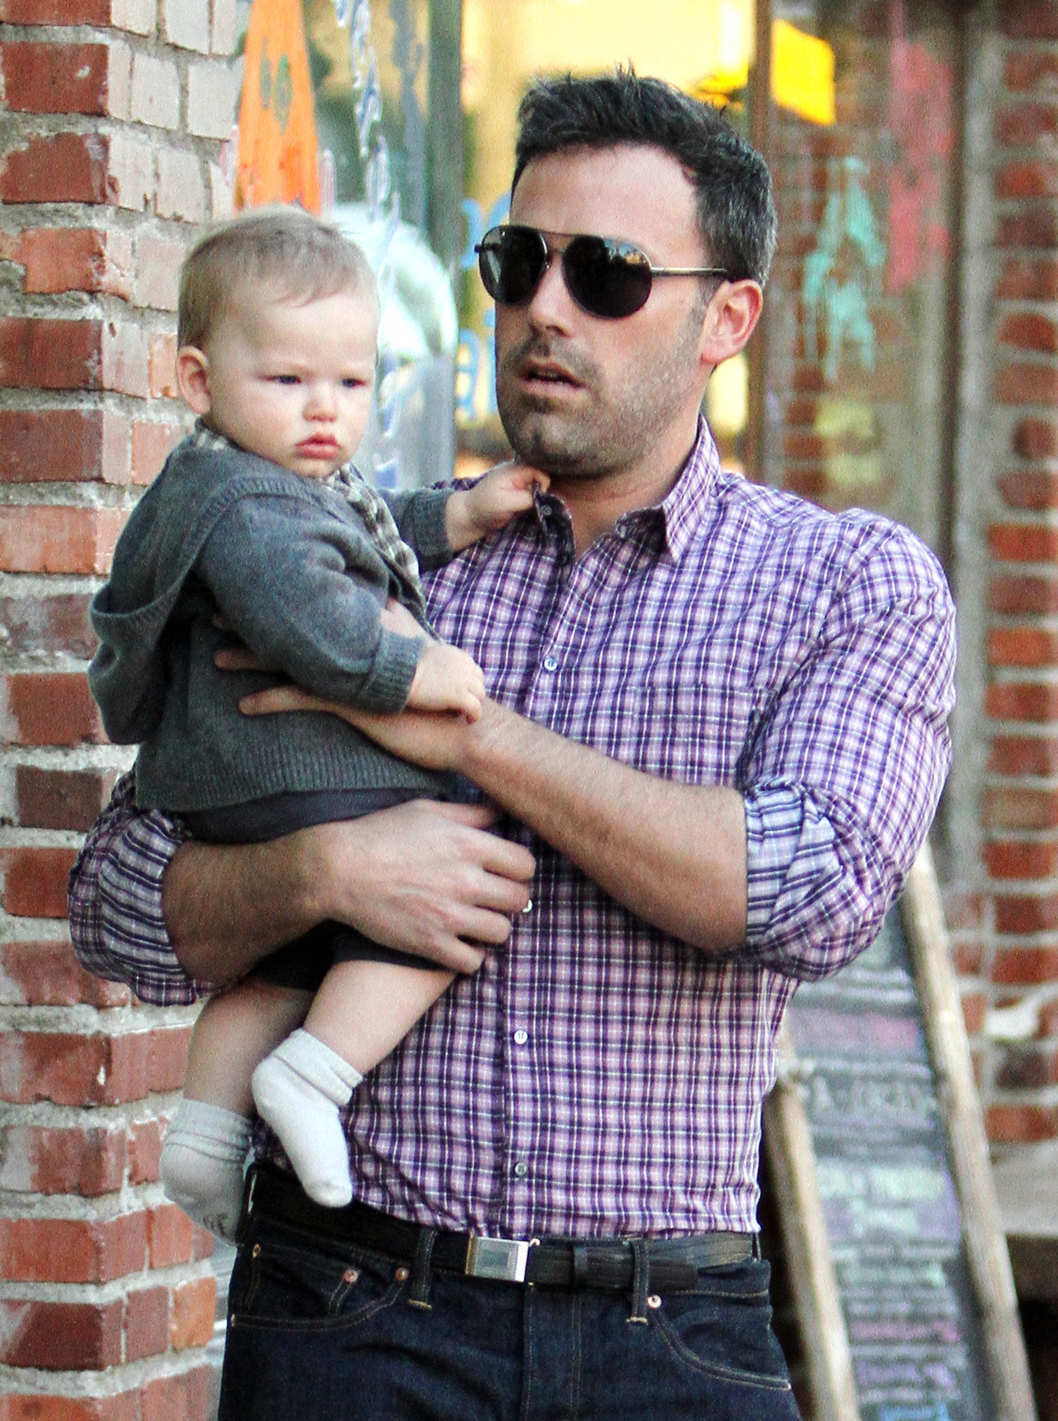 Ben Affleck takes baby son Samuel Affleck to dinner with wife Jennifer Garner and his daughters Violet Affleck and Seraphina Affleck in Pacific Palidades, California.